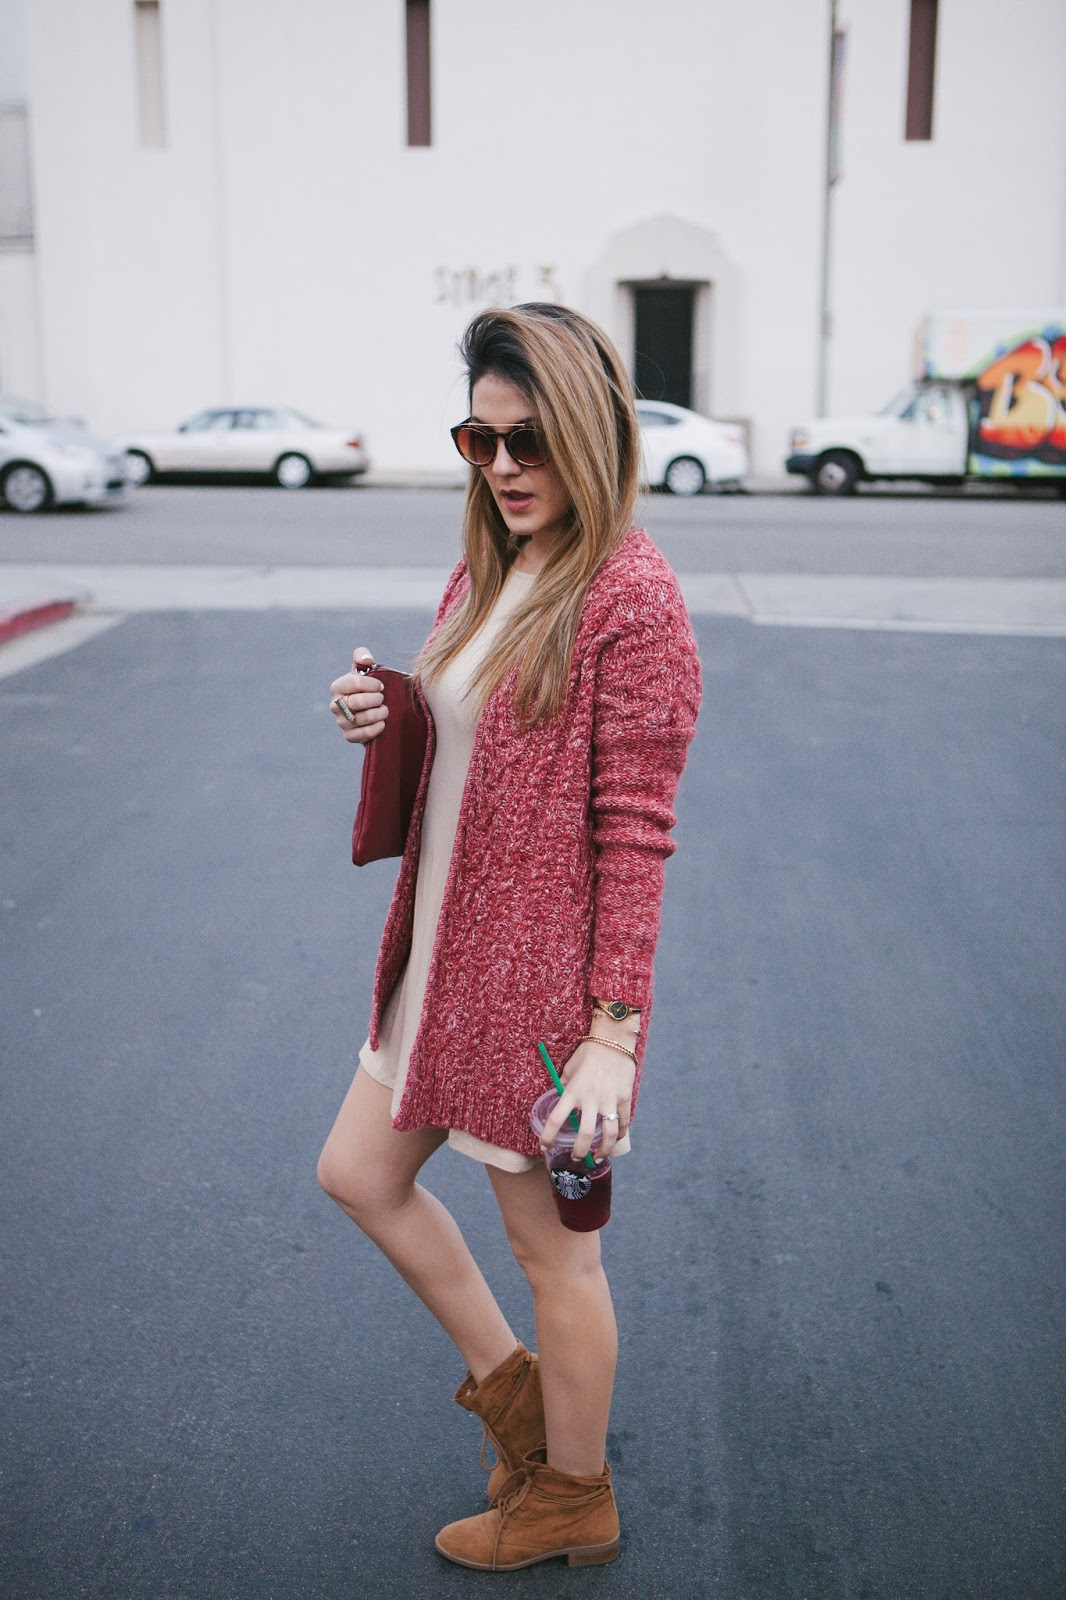 LA Fashion Blog - My Cup of Chic